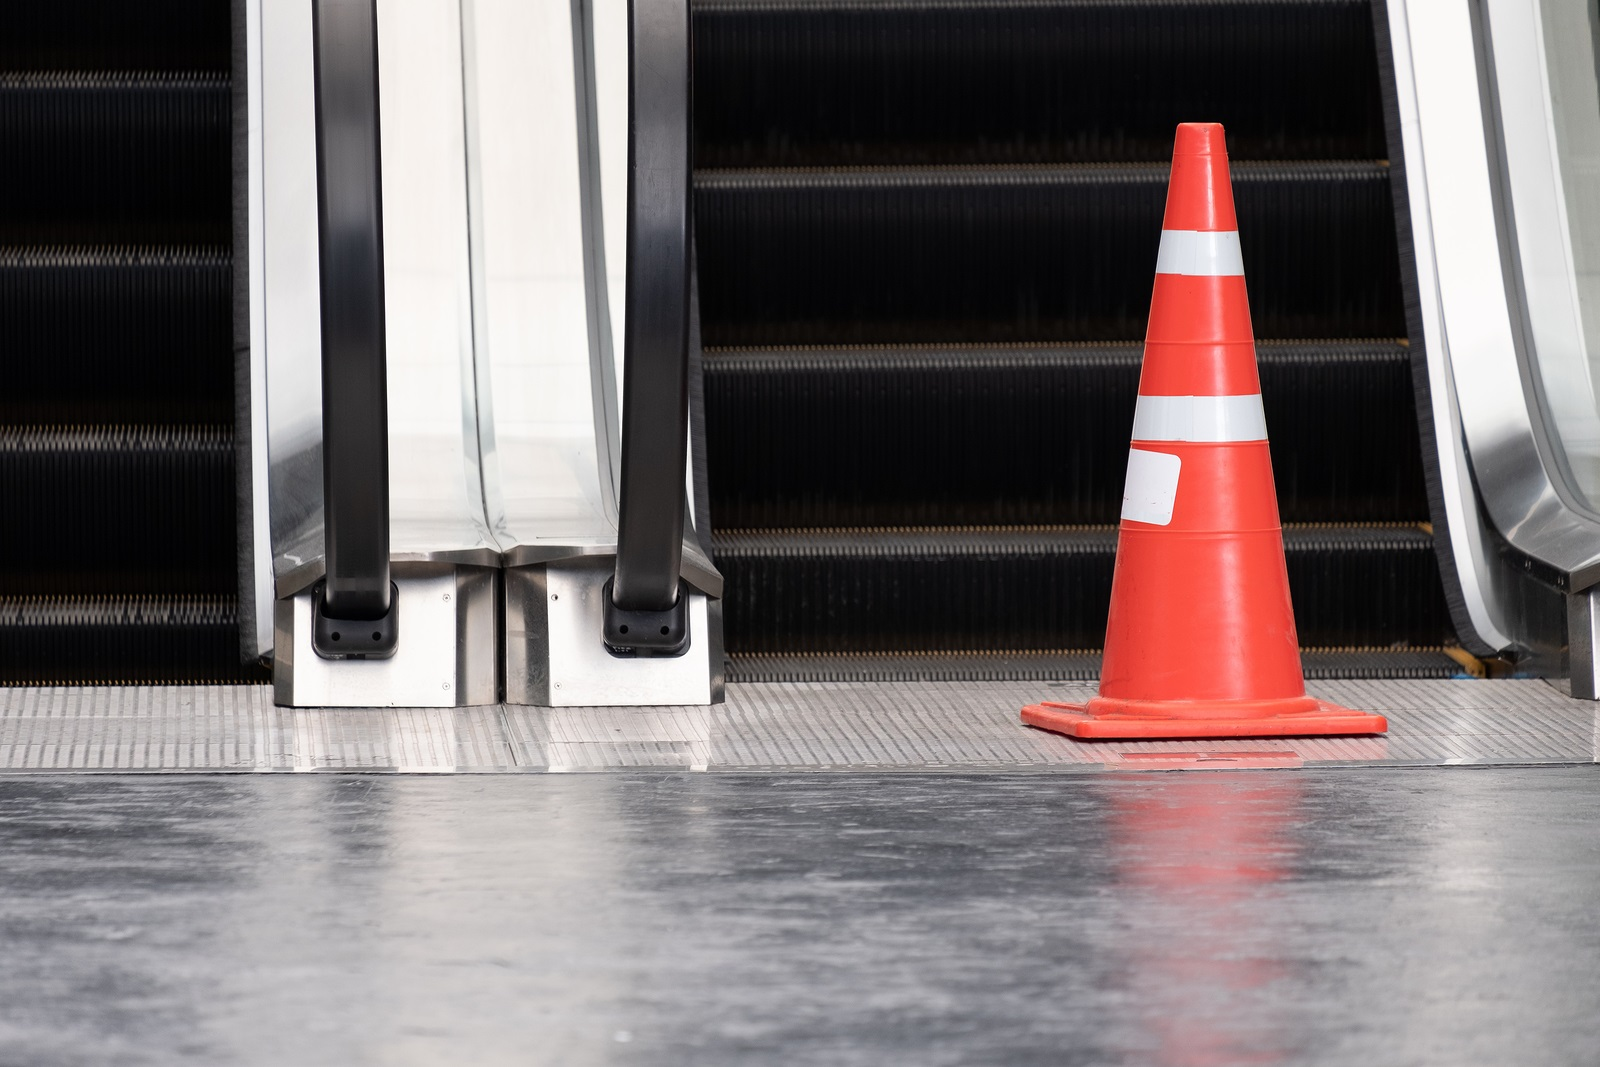 suing for escalator accident in Nevada